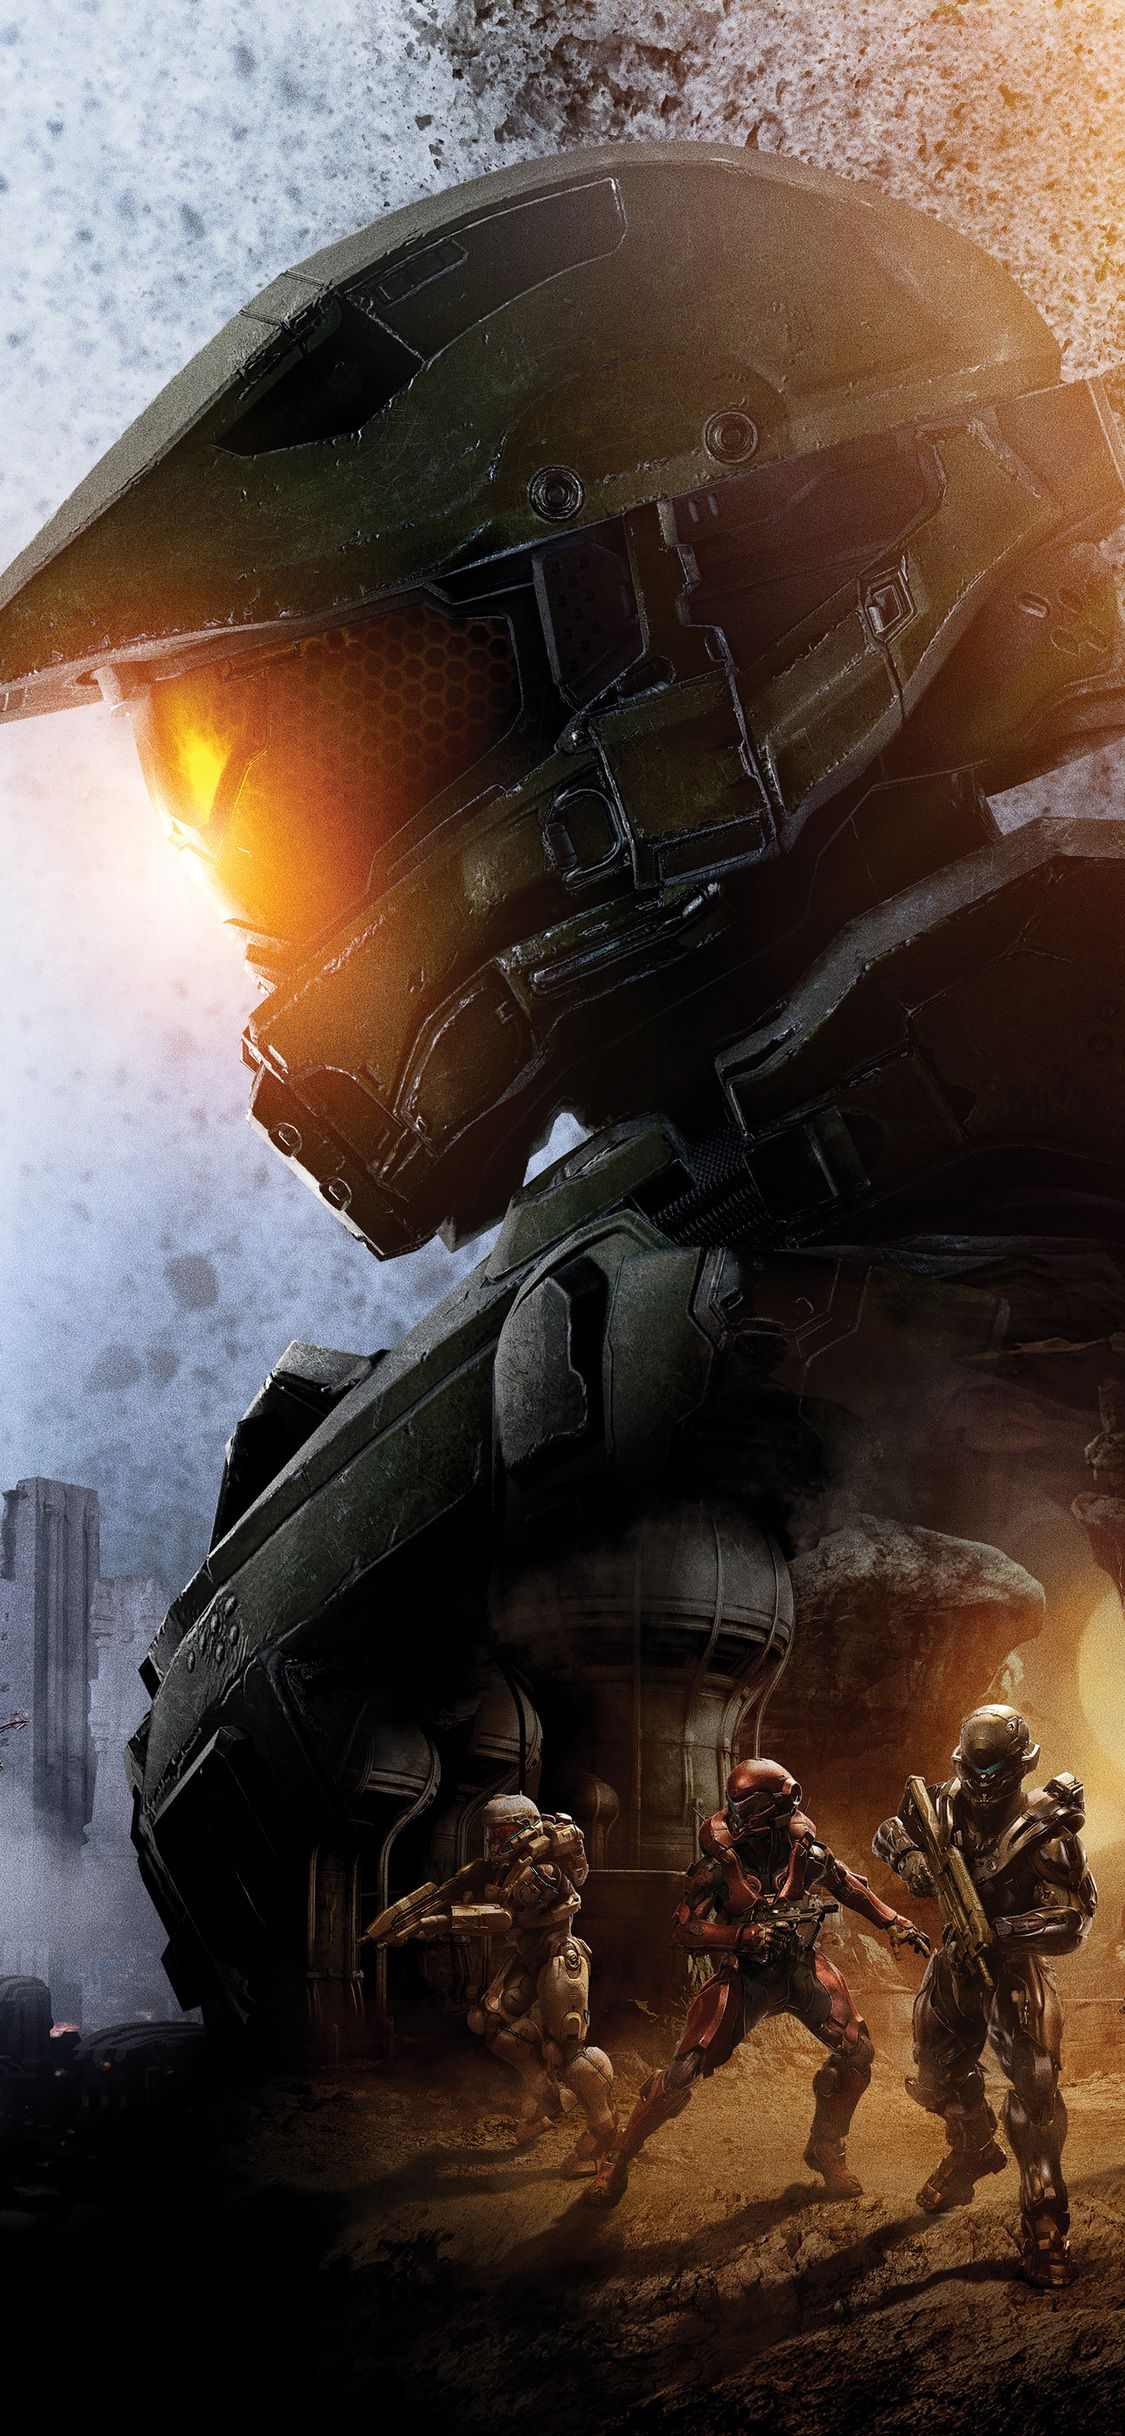 Halo Iphone Wallpapers Top Free Halo Iphone Backgrounds